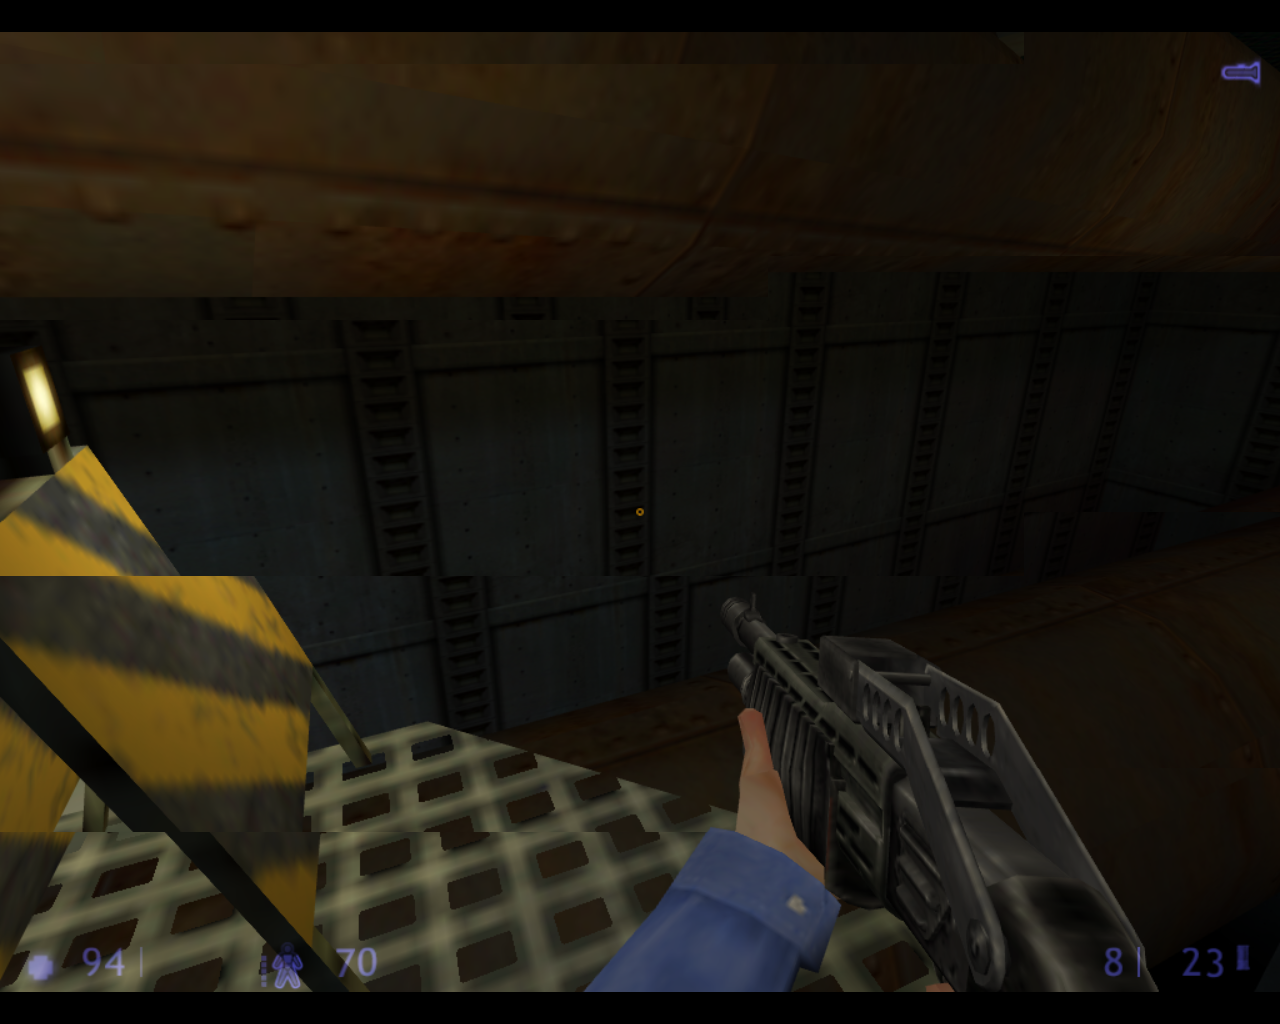 Half-Life: Blue Shift Linux To get past the broken bridge, I need to use this pipe as a make-shift bridge.